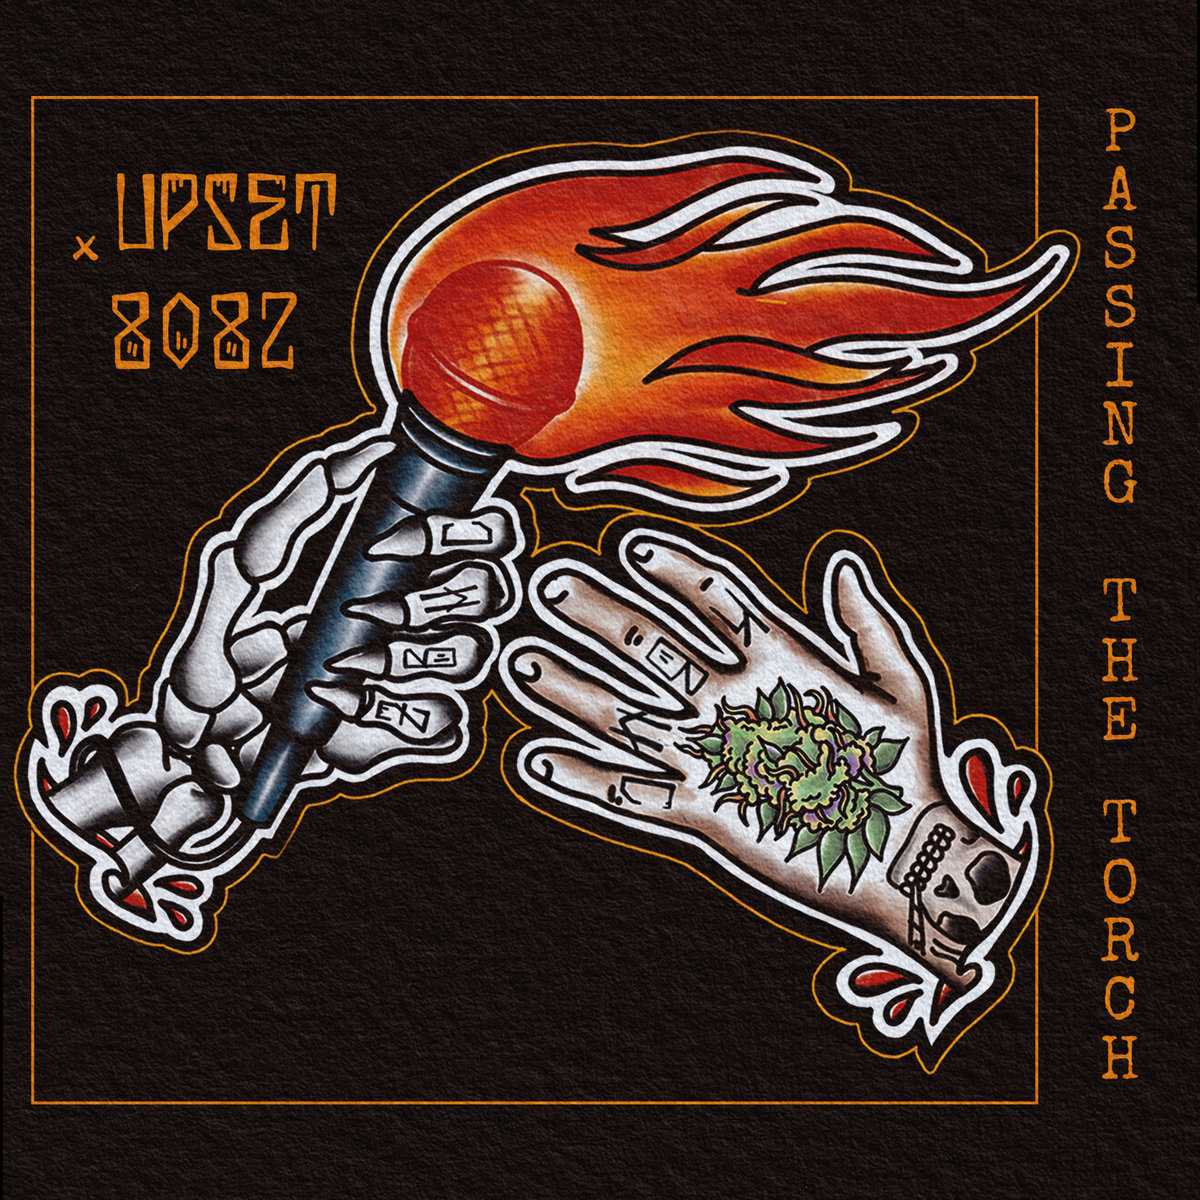 .UPSET / 8082 - Passing the Torch